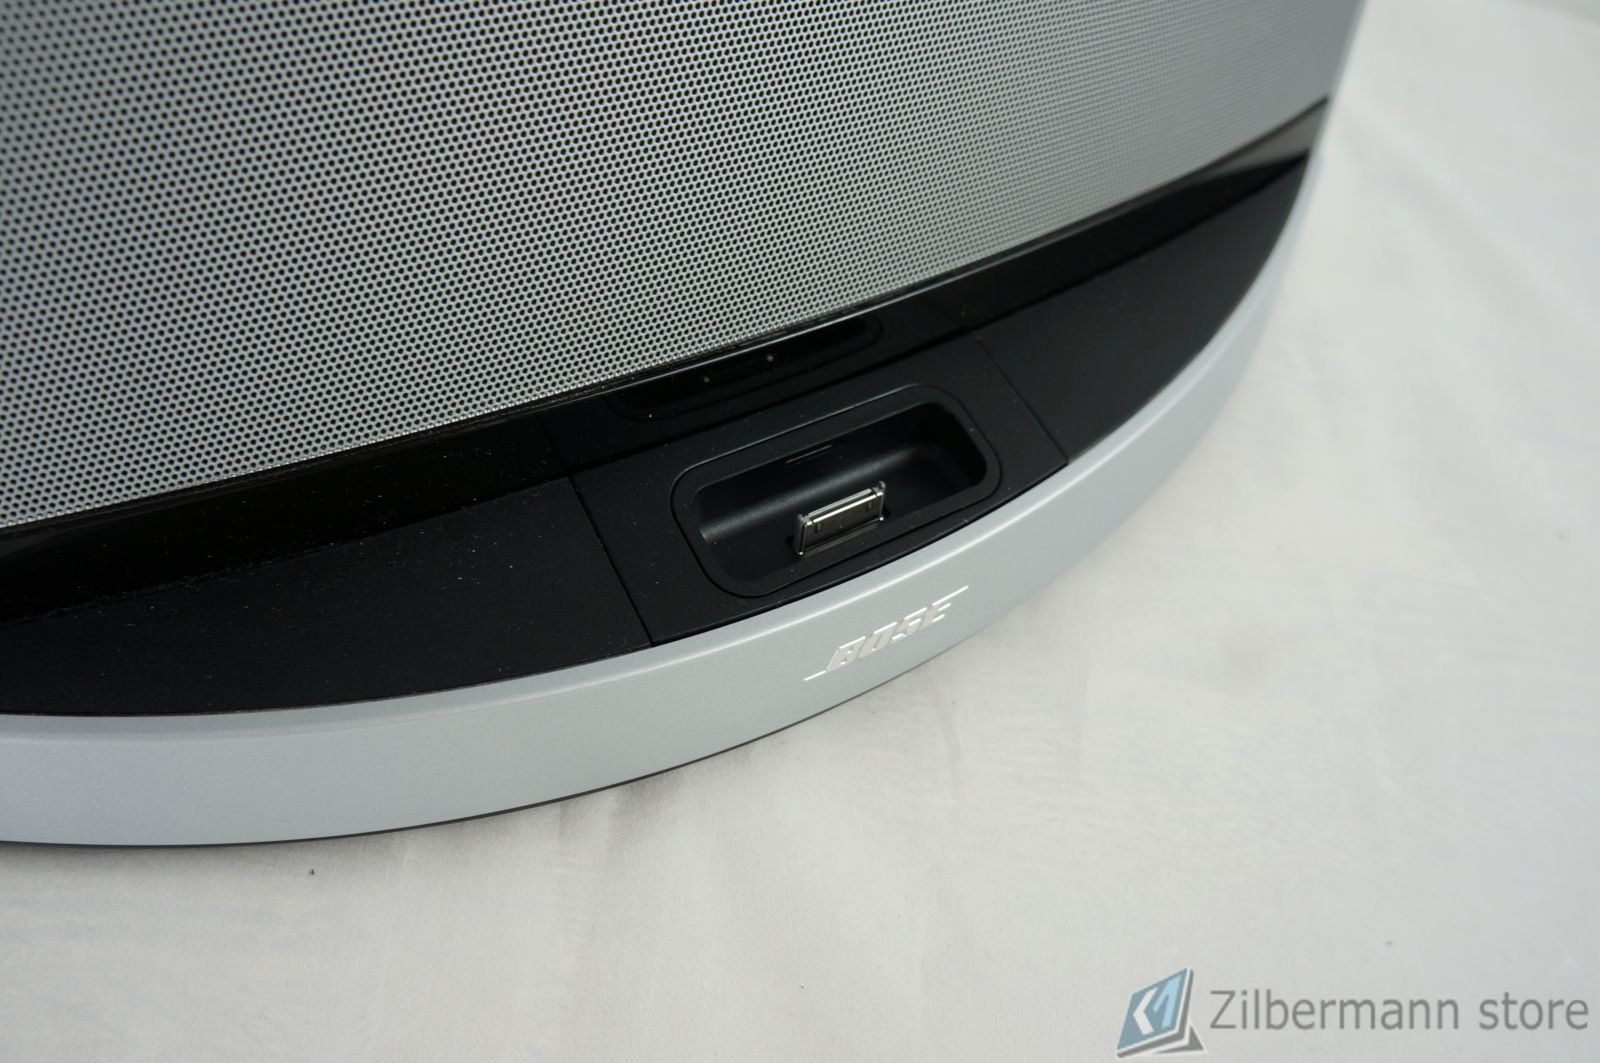 Bose_SoundDock_10_Digital_Music_System_09